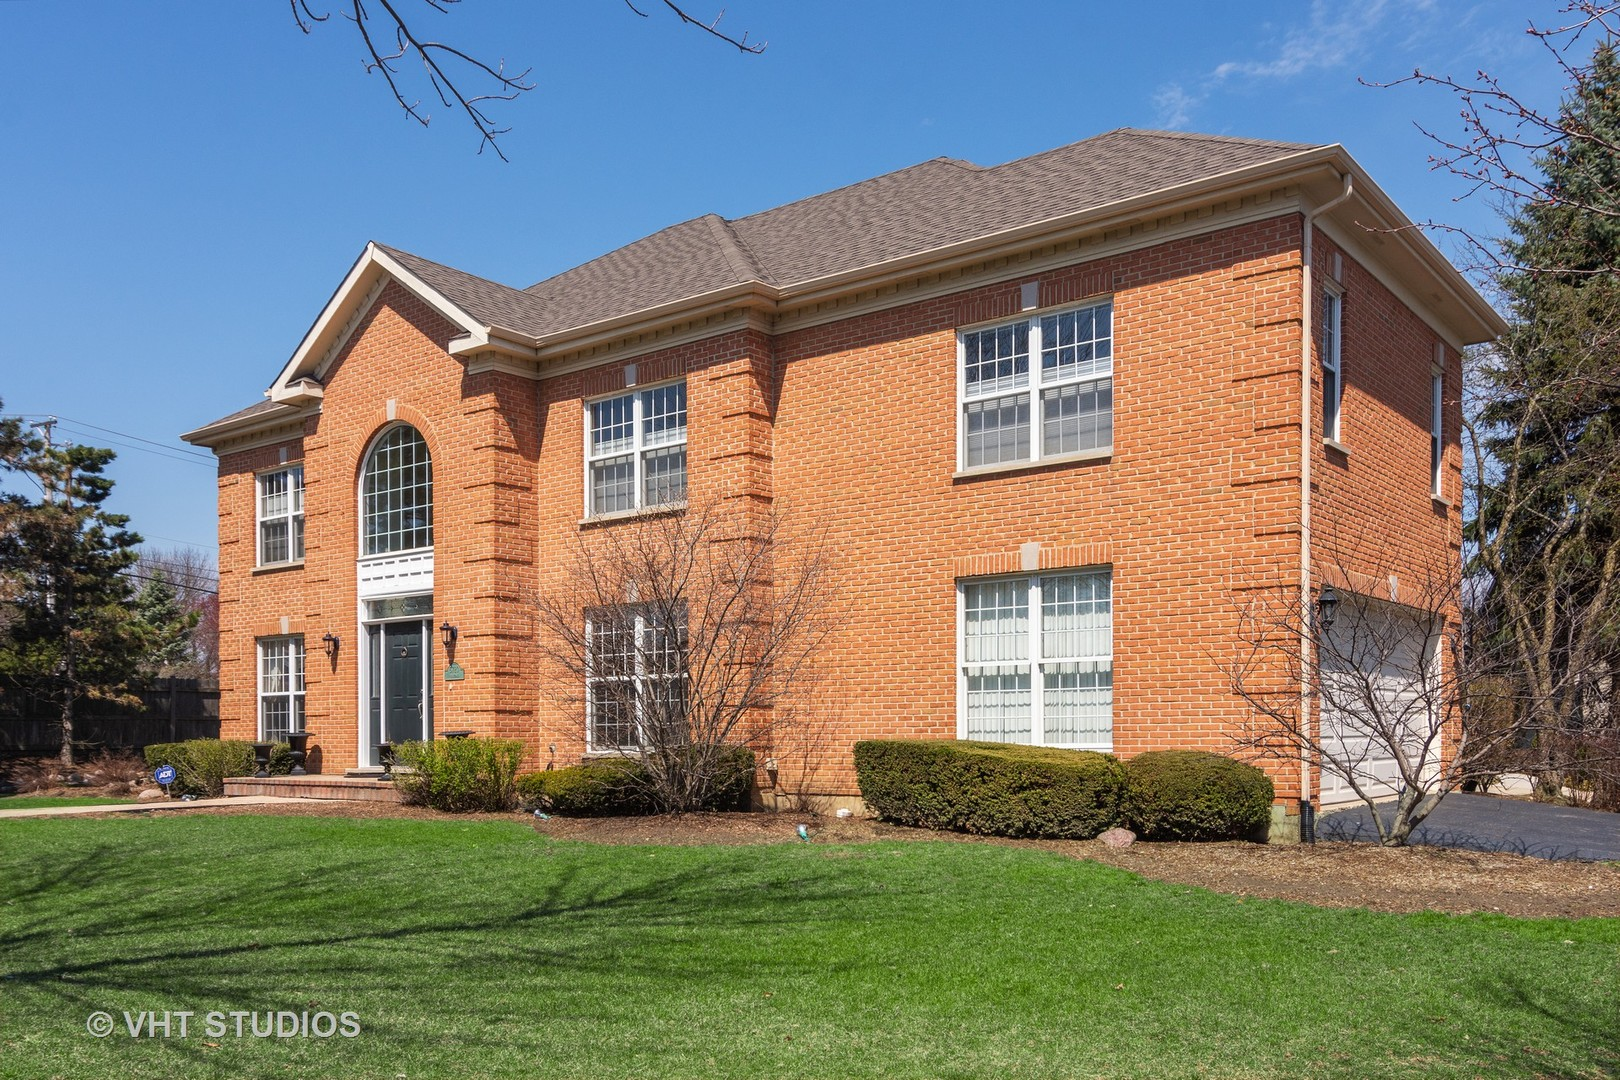 Photo of 5720 Arlingdale Drive ROLLING MEADOWS IL 60008